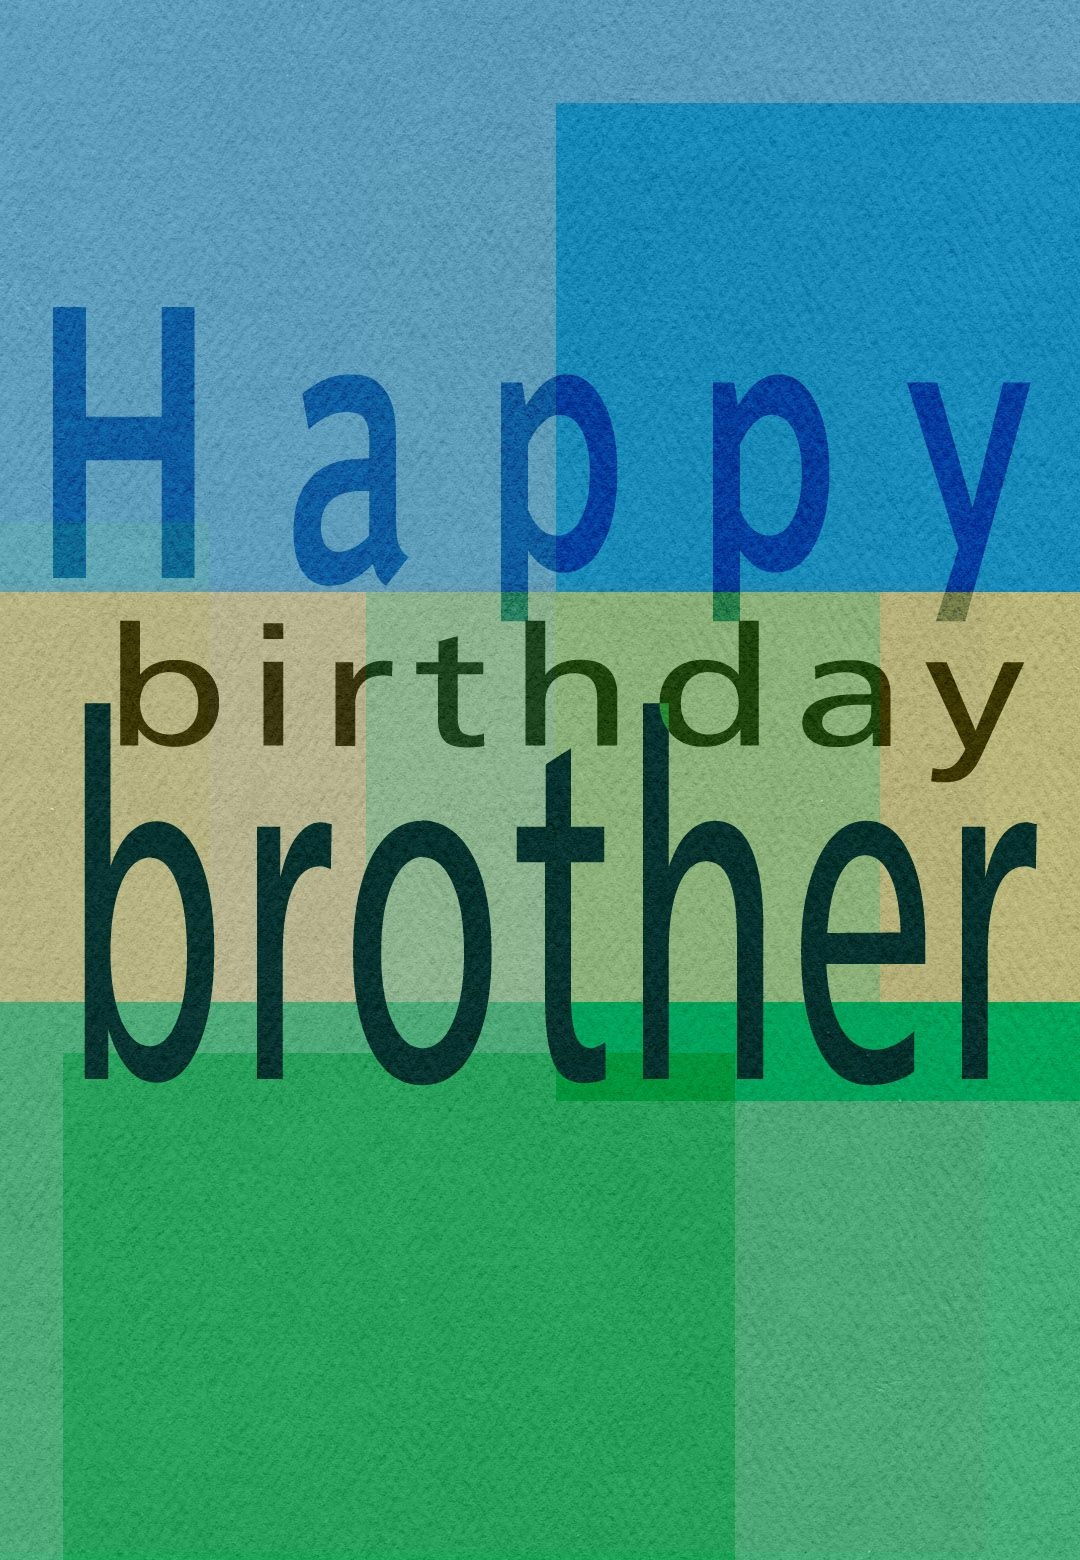 Free Printable Greeting Cards | Gift Ideas | Happy Birthday Brother - Free Printable Birthday Cards For Brother